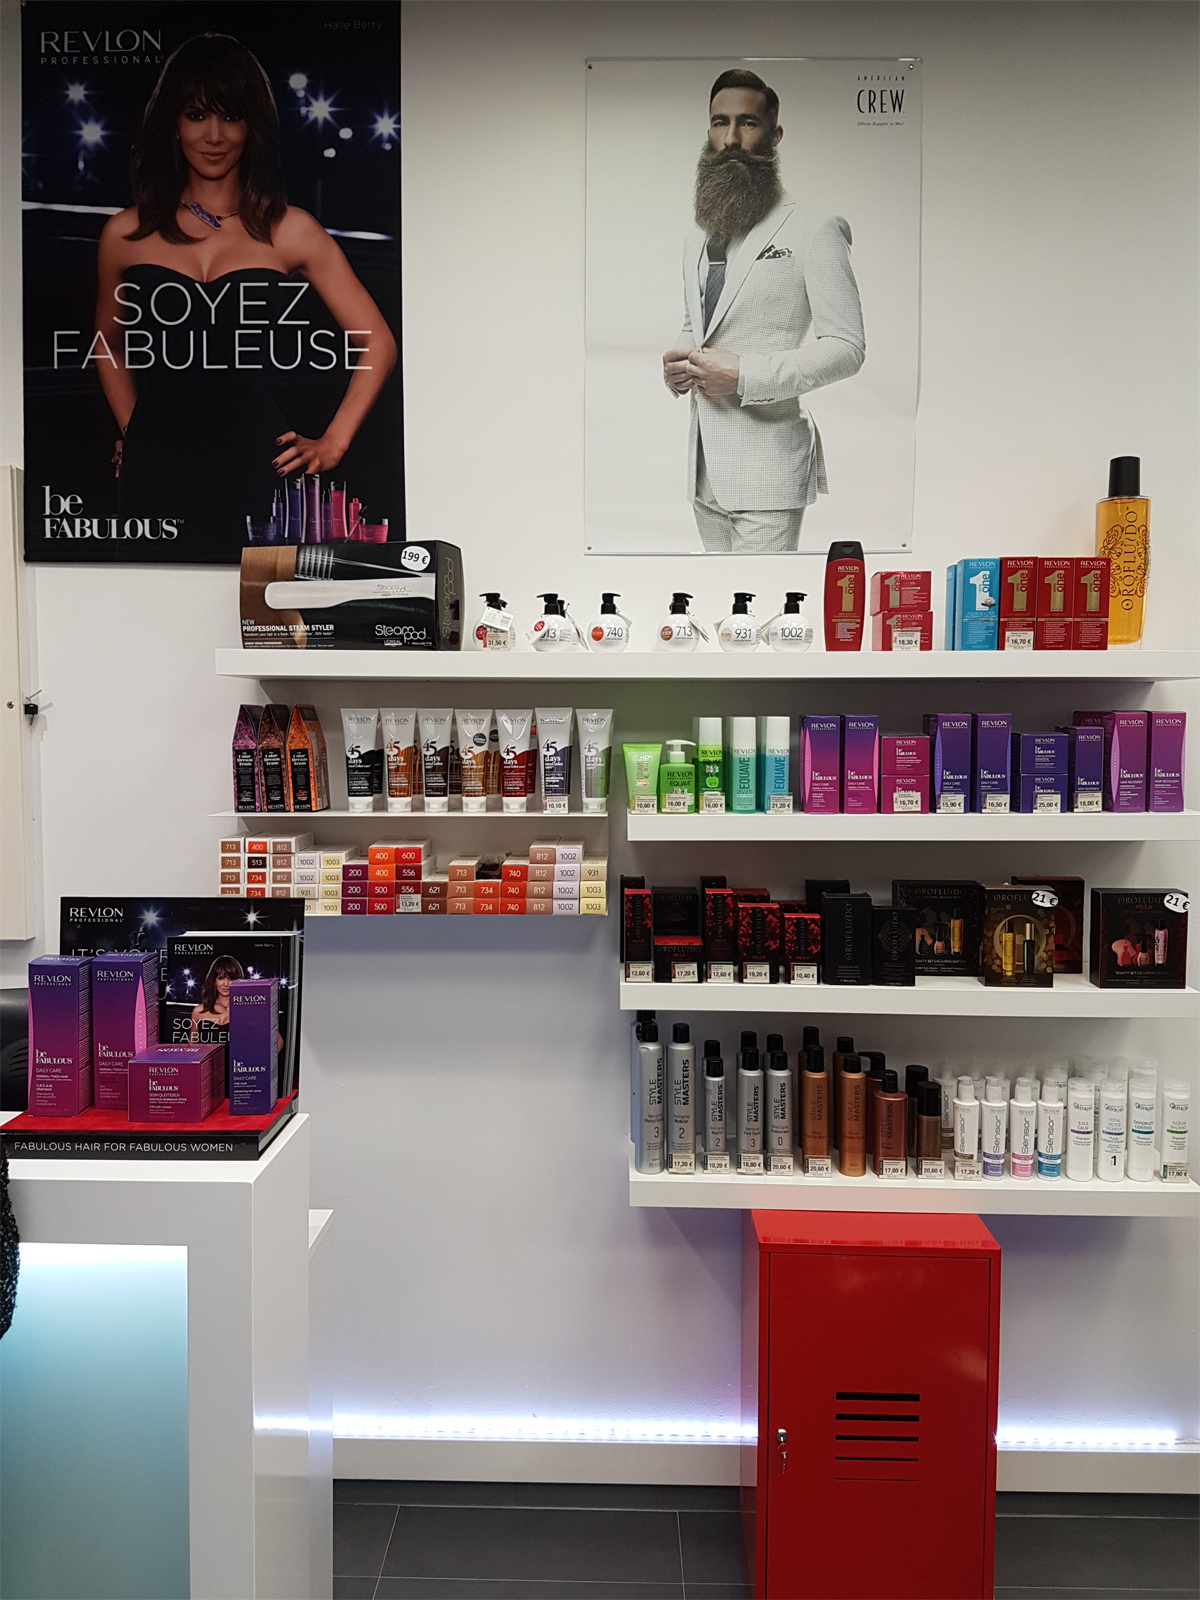 Johann picard coiffeur gardanne salon de coiffure simiane for Salon esthetique marseille